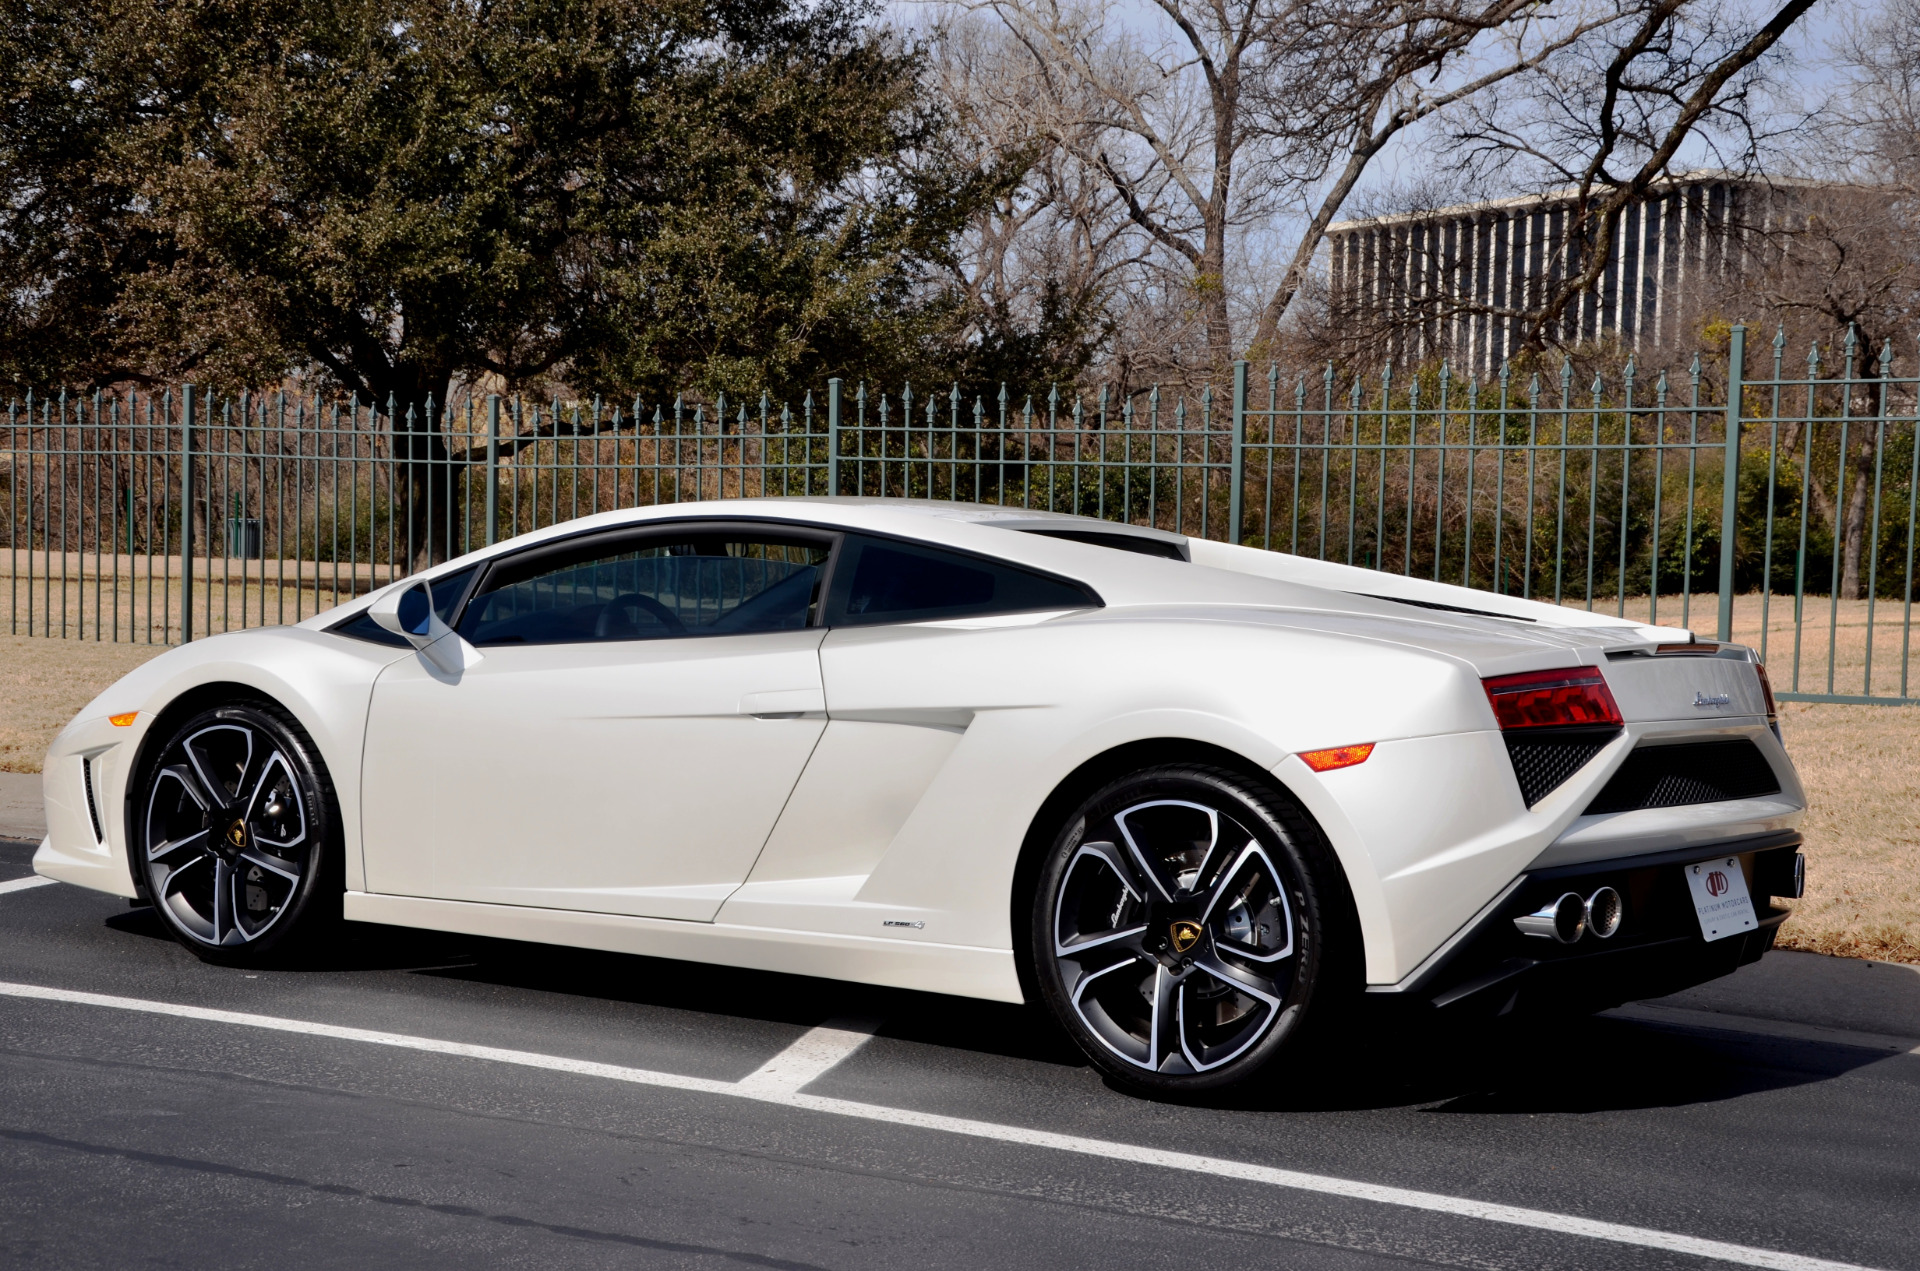 2013 Lamborghini Gallardo Lp 560 4 Coupe Stock 116999